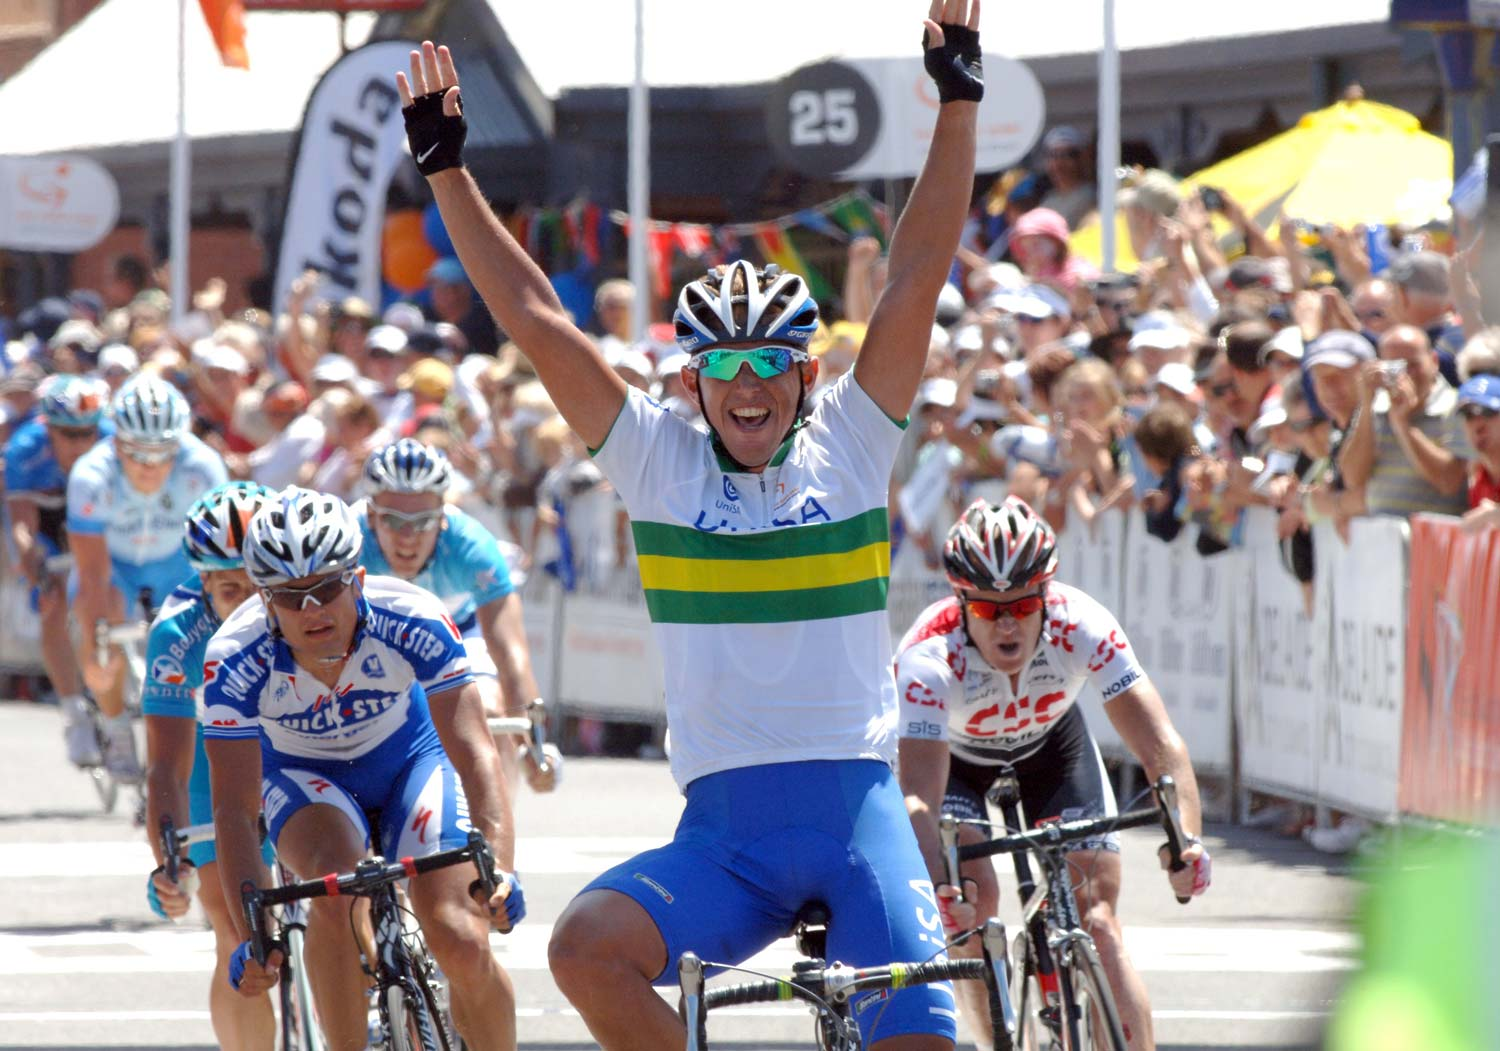 Allan Davis contested every Tour Down Under from when he was an 18-year-old in 1999 through to 2009 when he won the title. Here he wins a stage in 2008 as part of the composite UniSA team. Photo: Graham Watson